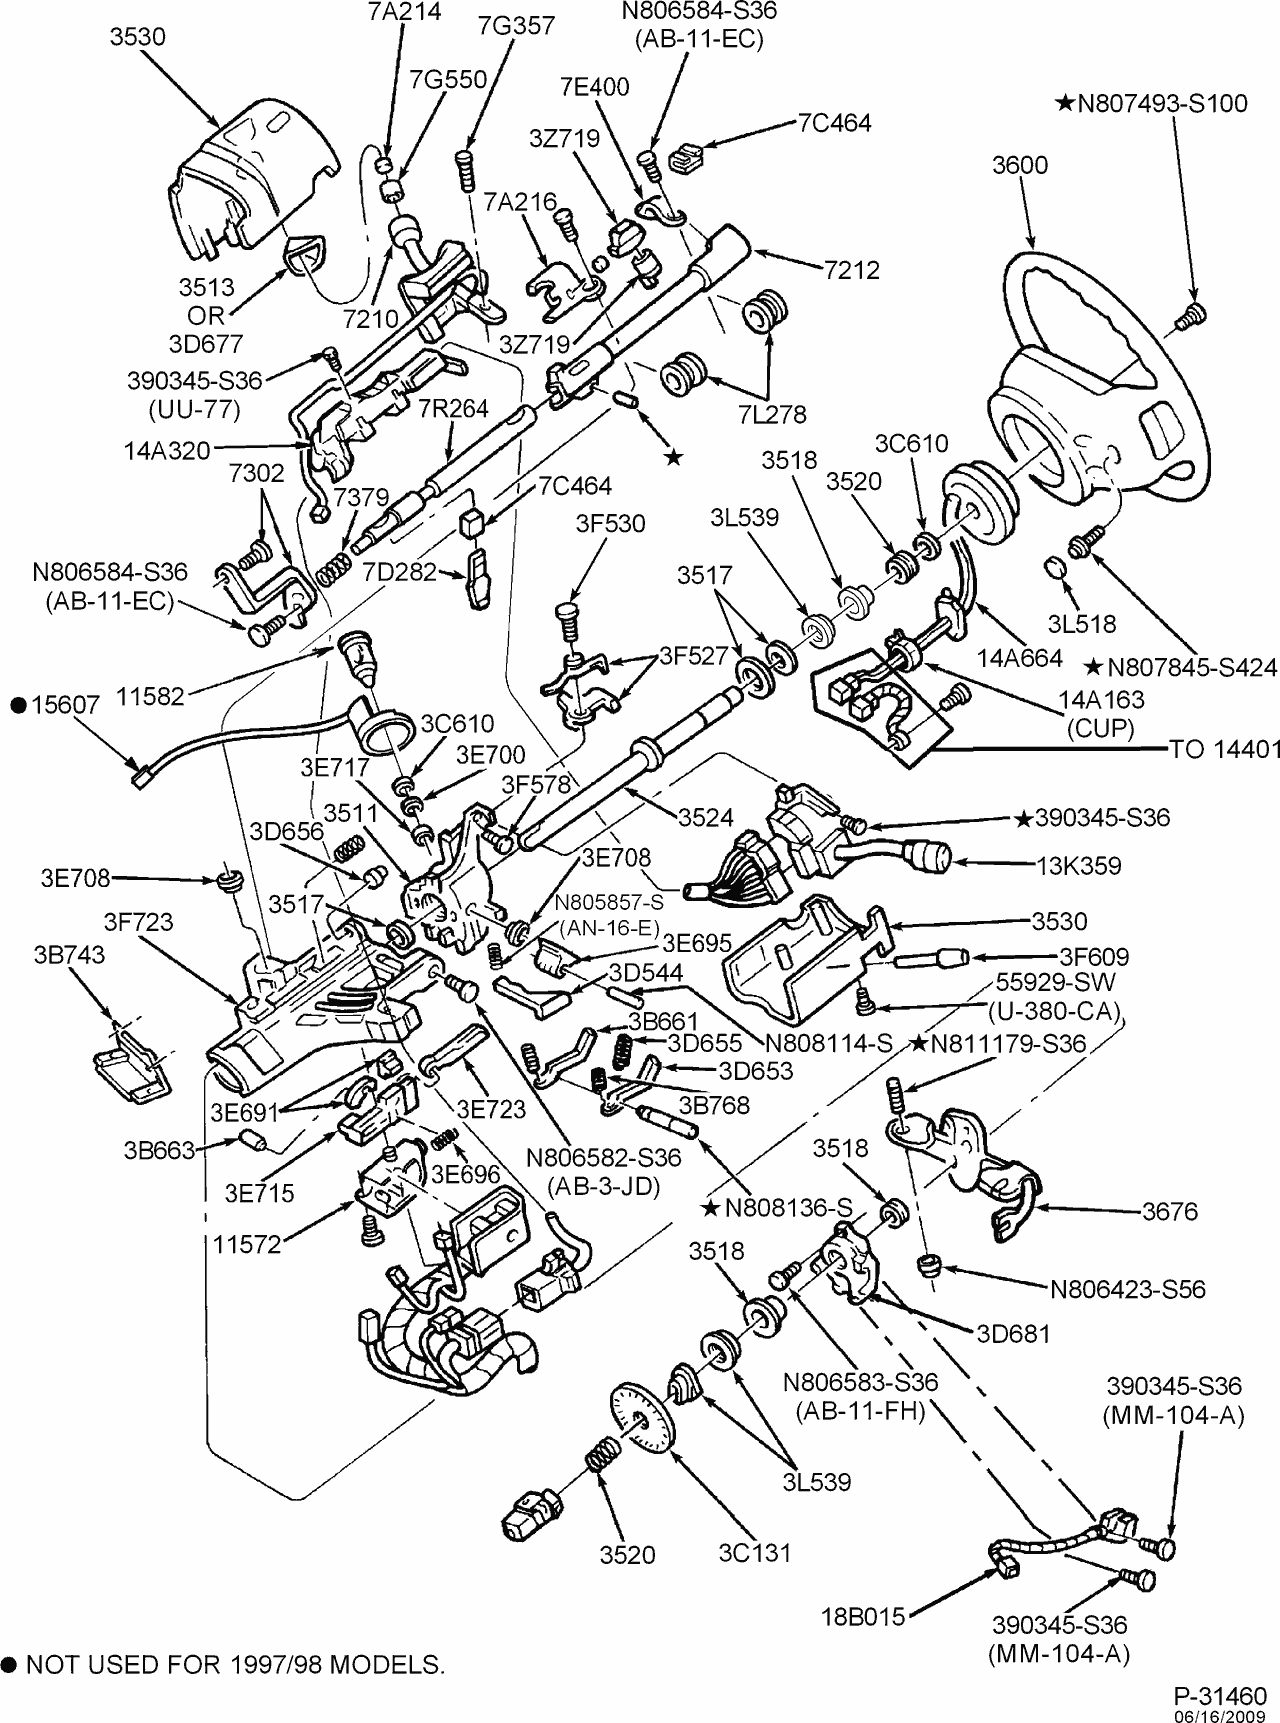 1995 Ford F150 Steering Column Diagram - Wiring Library